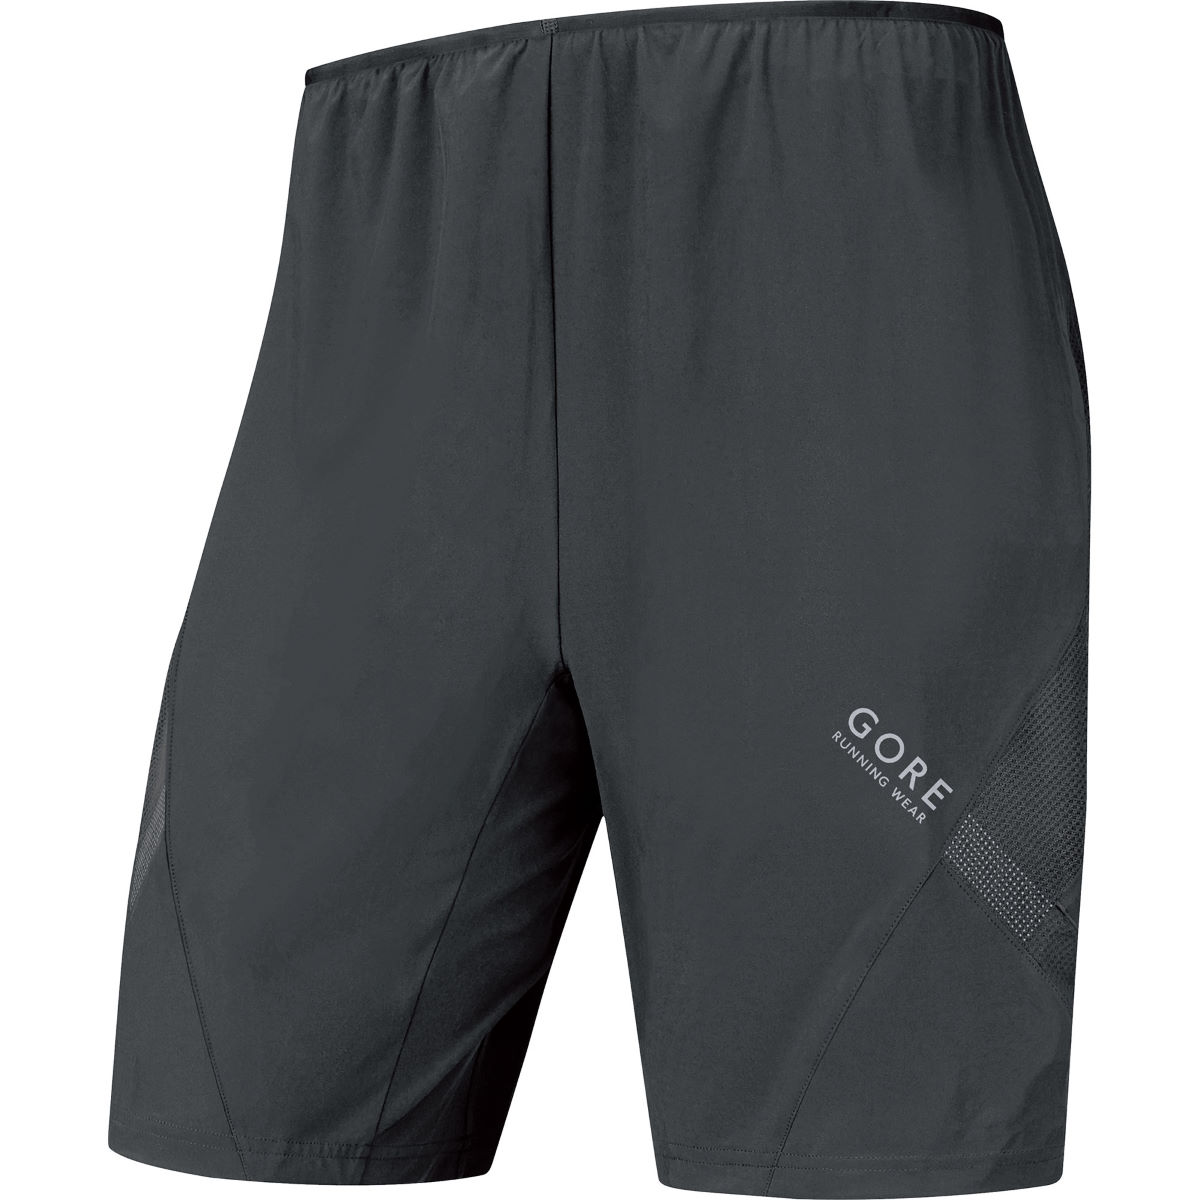 Short Gore Running Wear Air (2 en 1) - S black Shorts de running